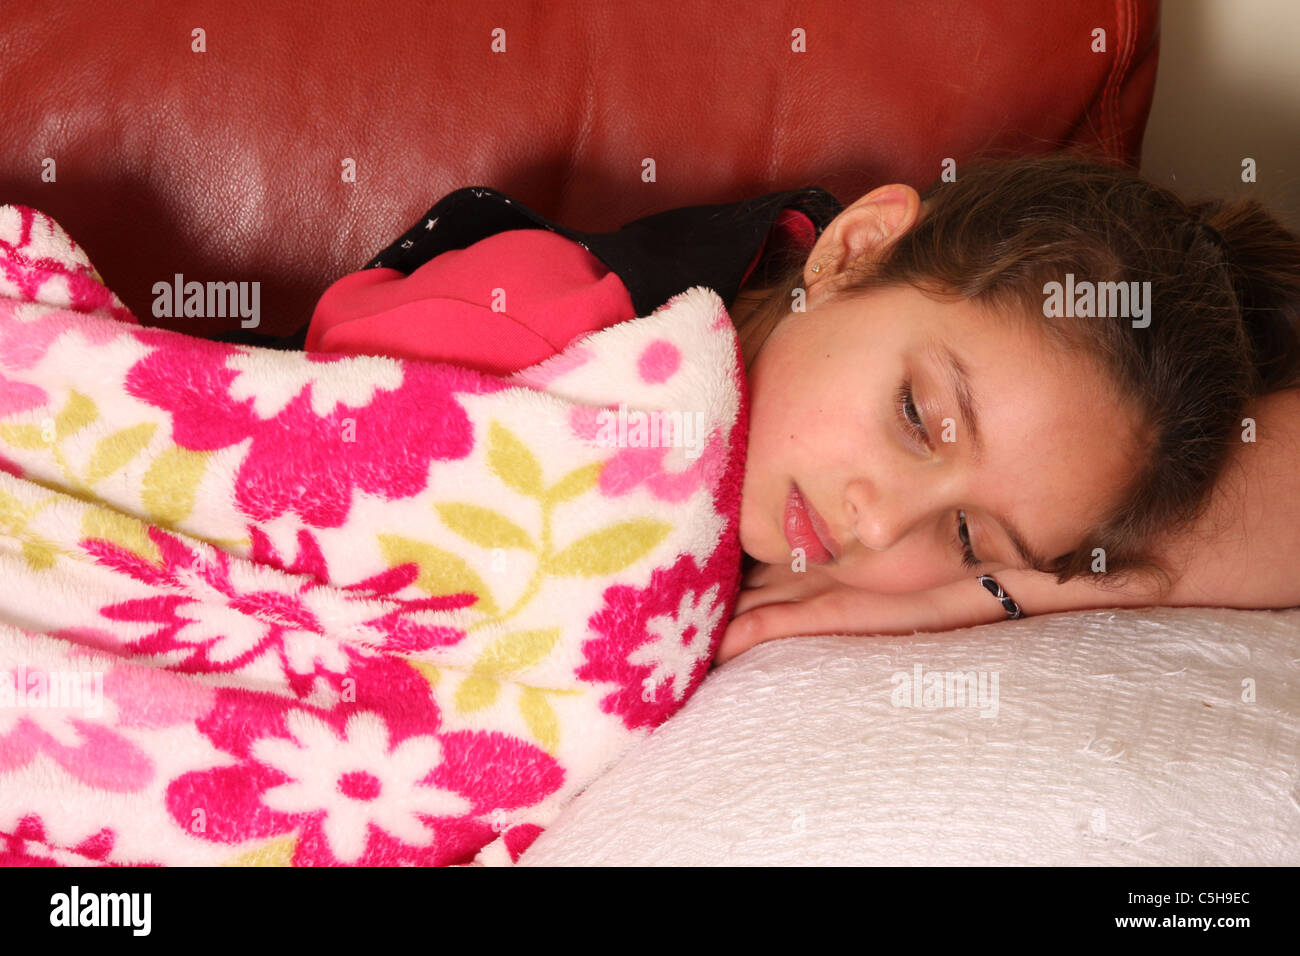 A twelve year old girl feeling sick and resting under a blanket on her sofa. - Stock Image